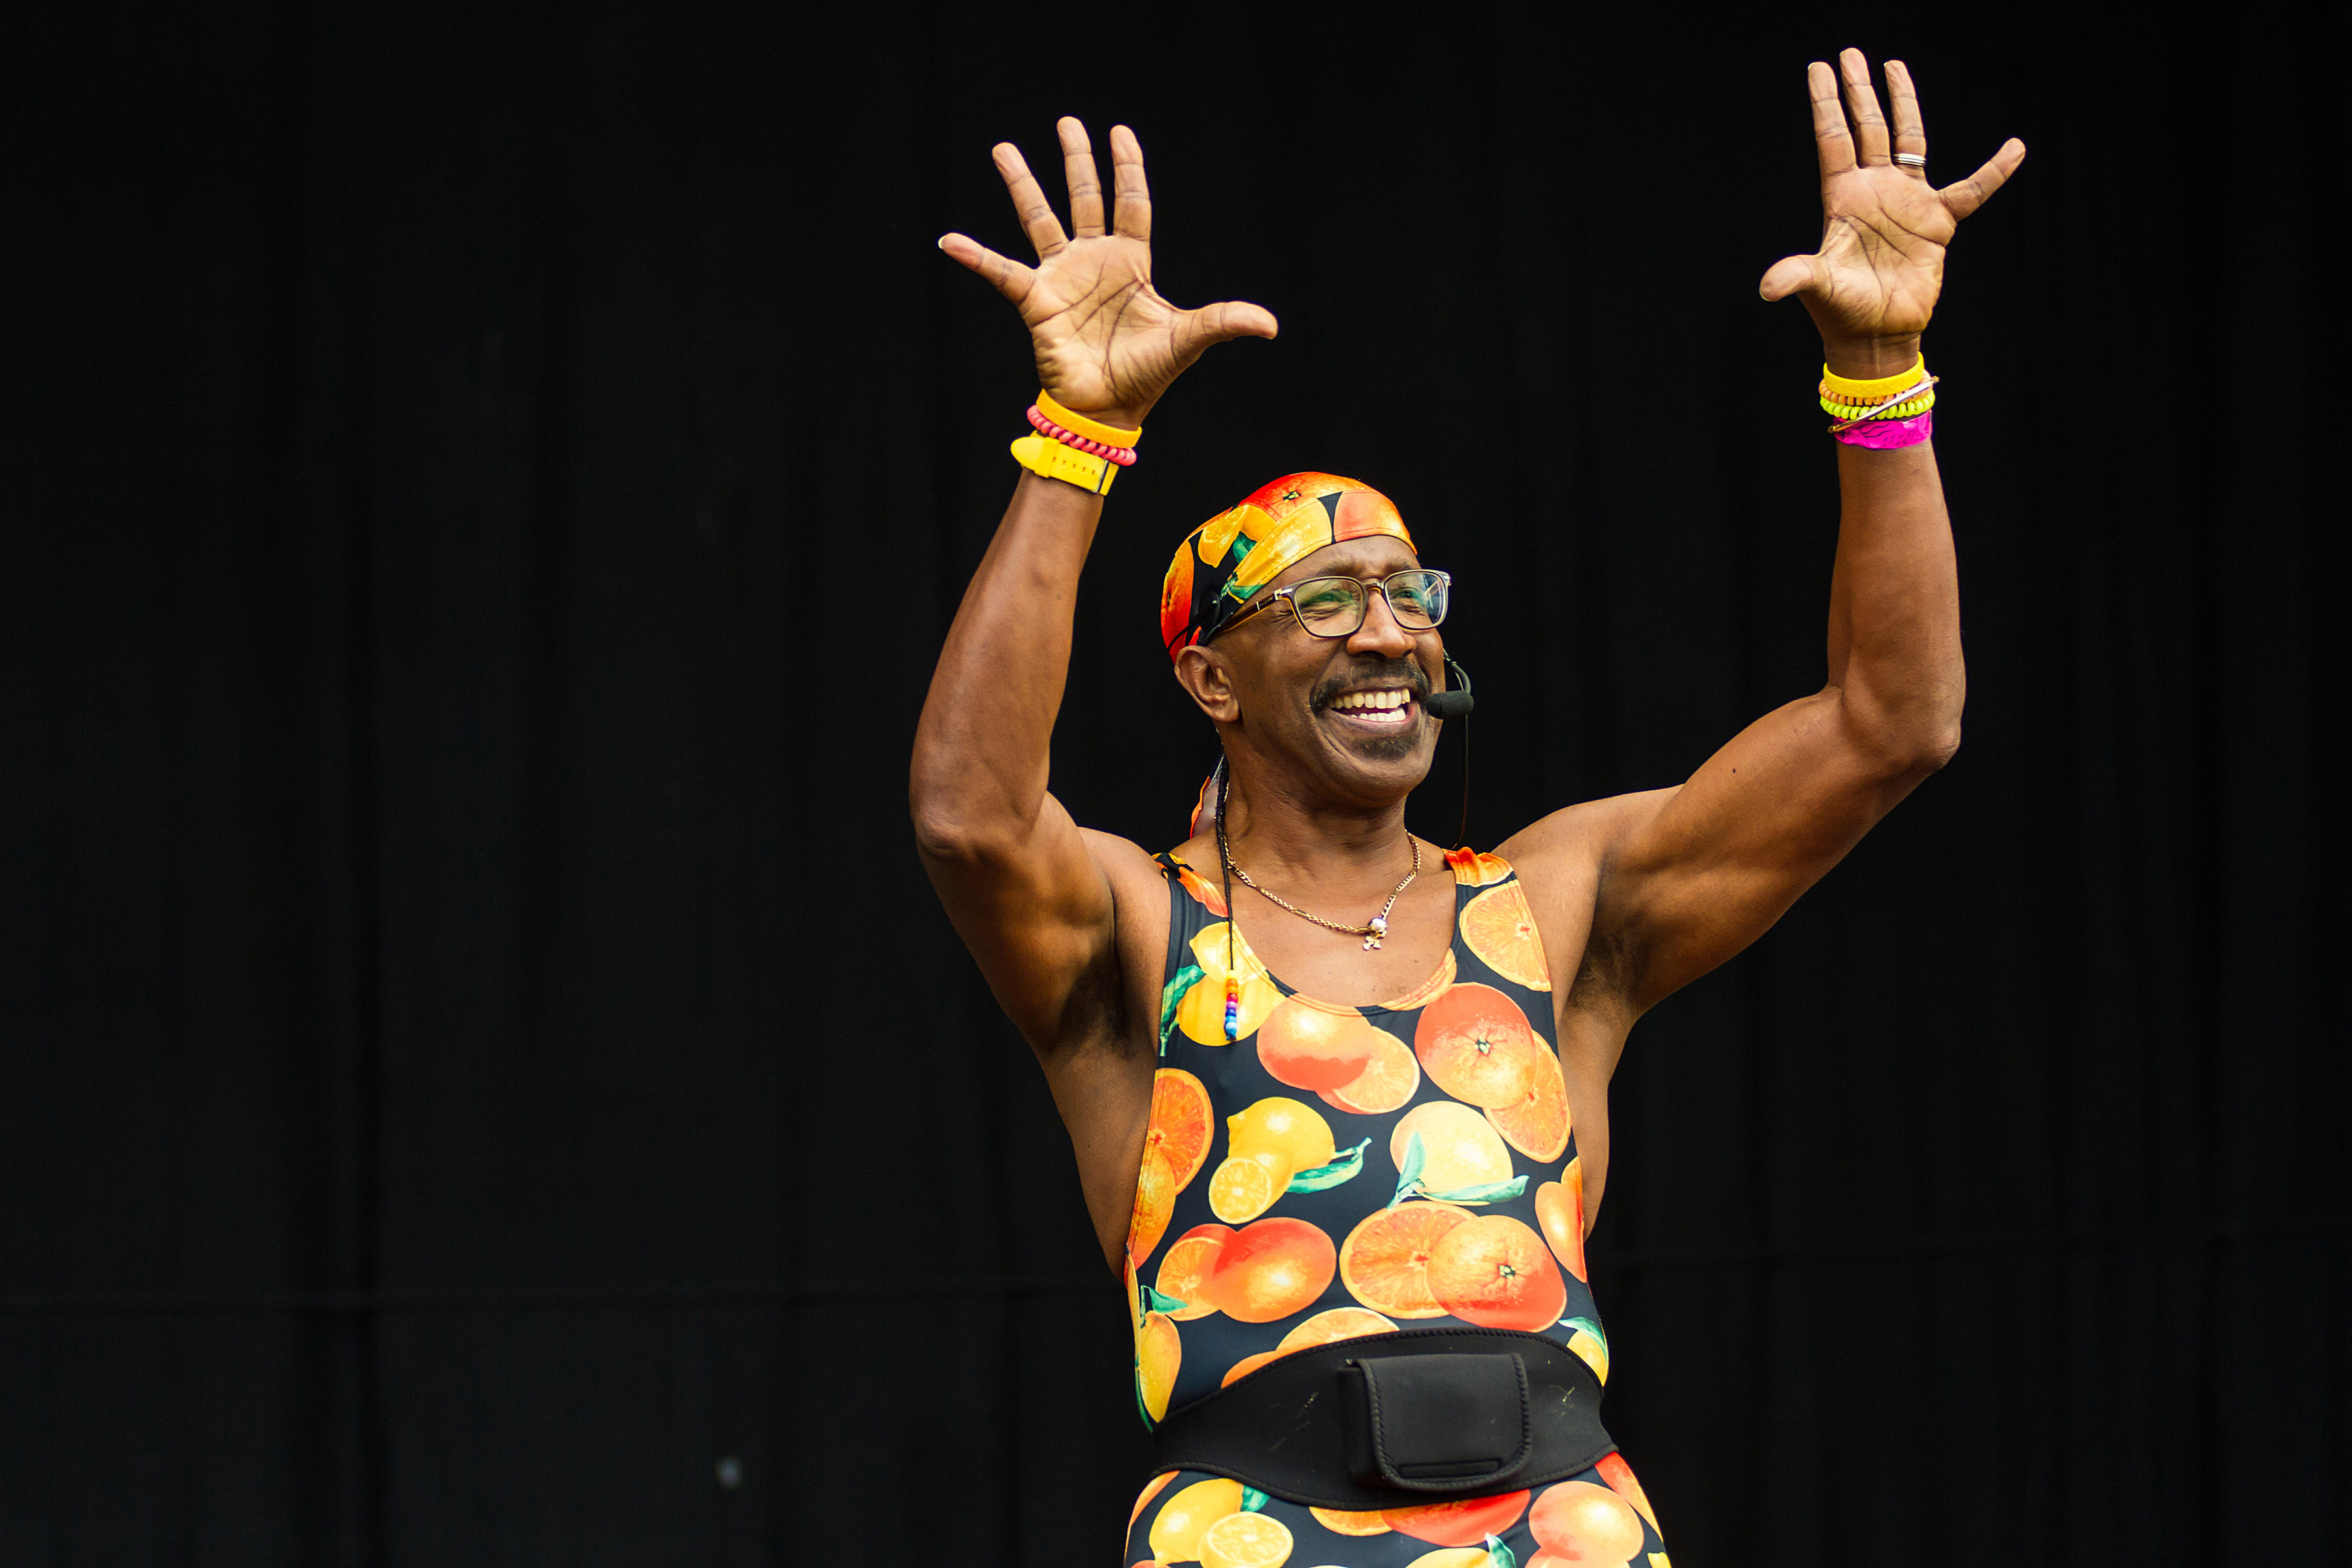 Mr Motivator on the Main Stage at Truck Festival 2017